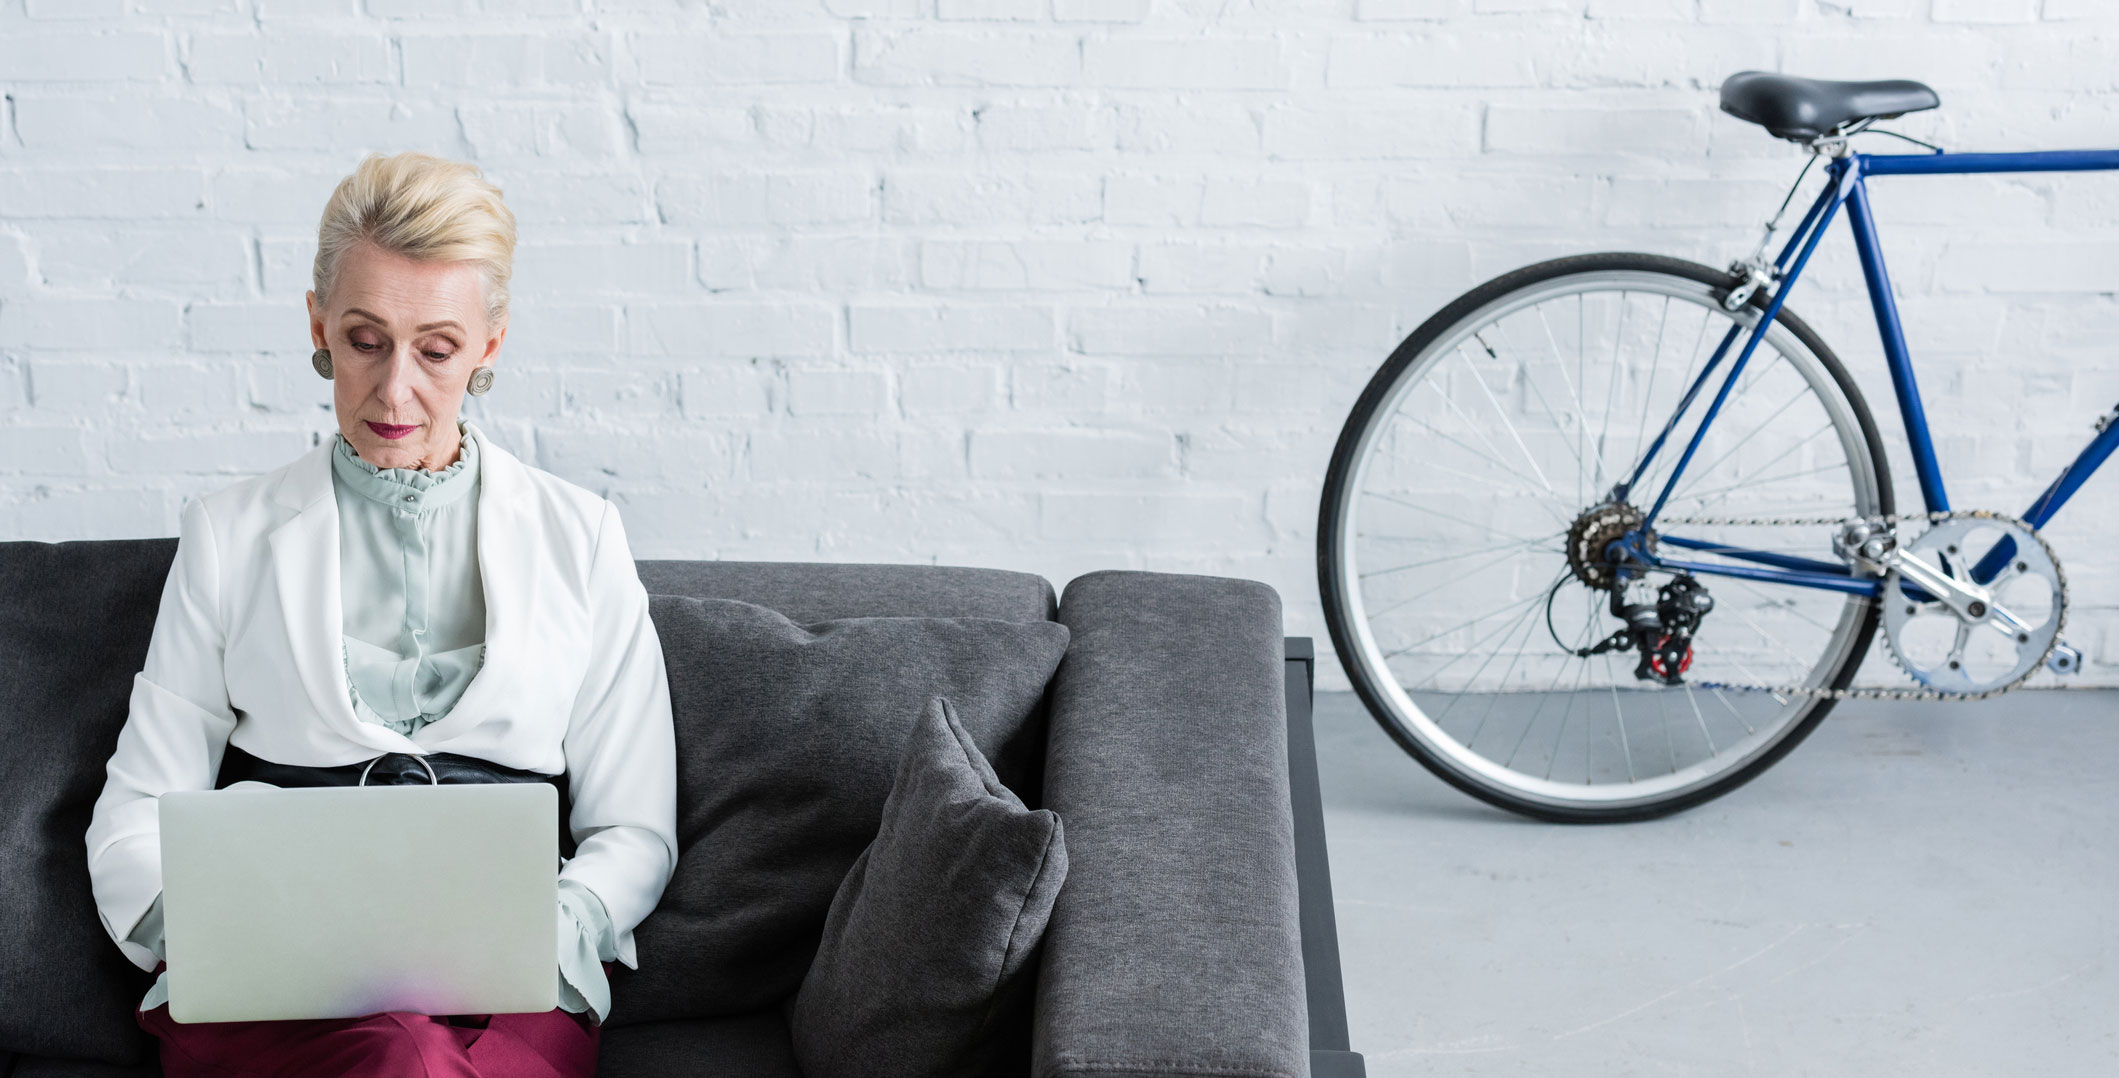 Office-lady-and-bike